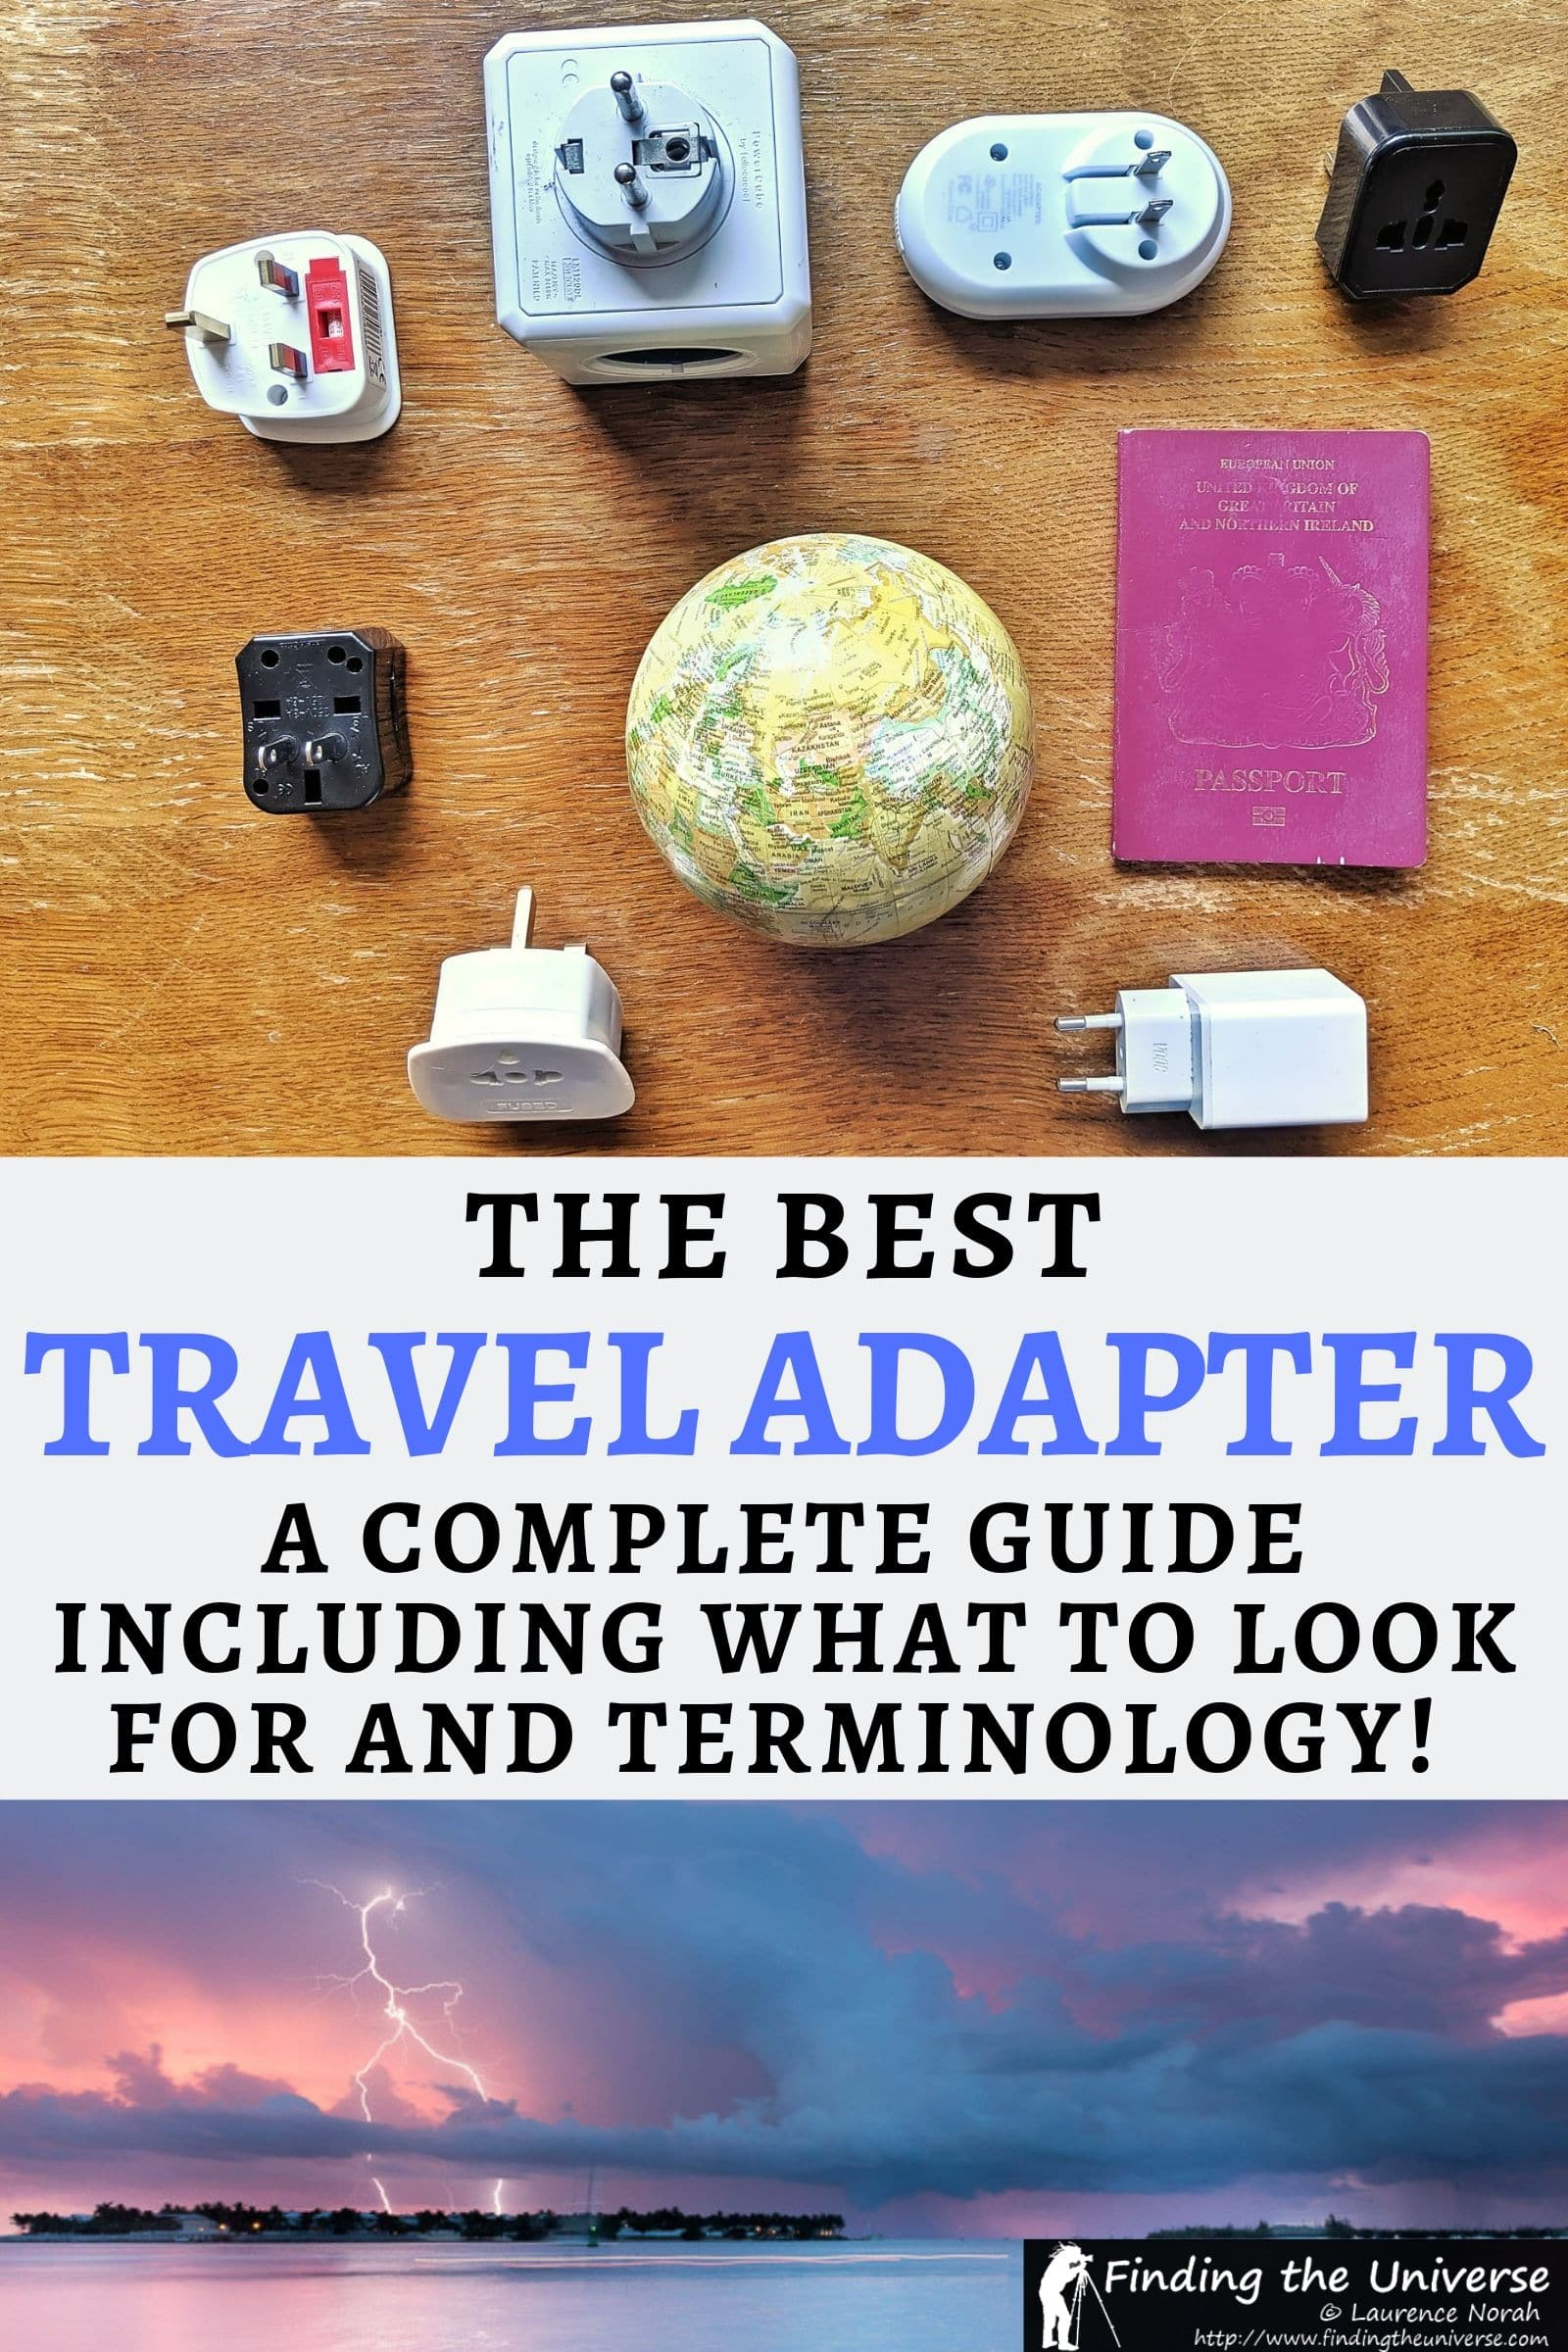 A detailed guide to the best travel adapter, with advice on what to look for when buying a travel adapter as some of the best options on the market in 2019!